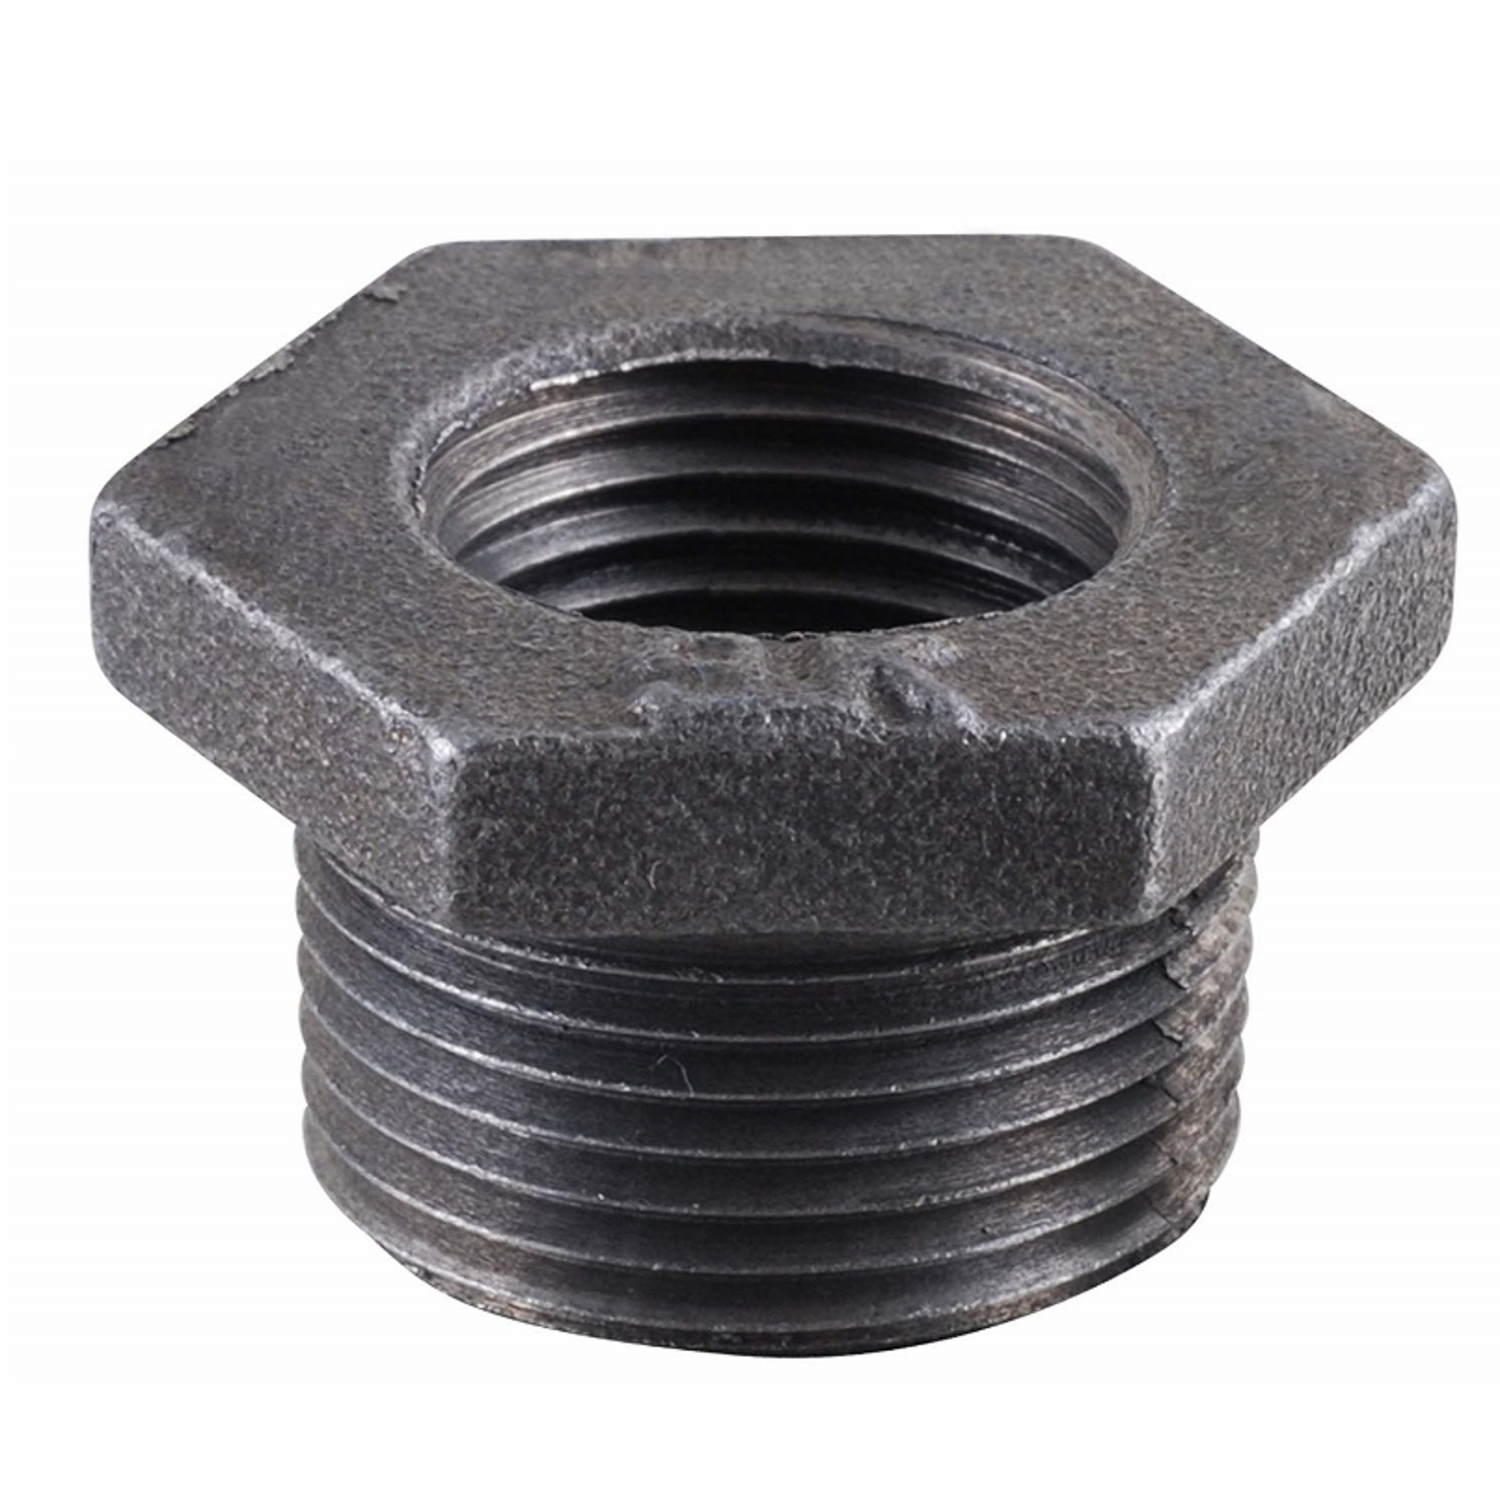 B & K  2 in. MPT   x 1-1/2 in. Dia. FPT  Black  Malleable Iron  Hex Bushing